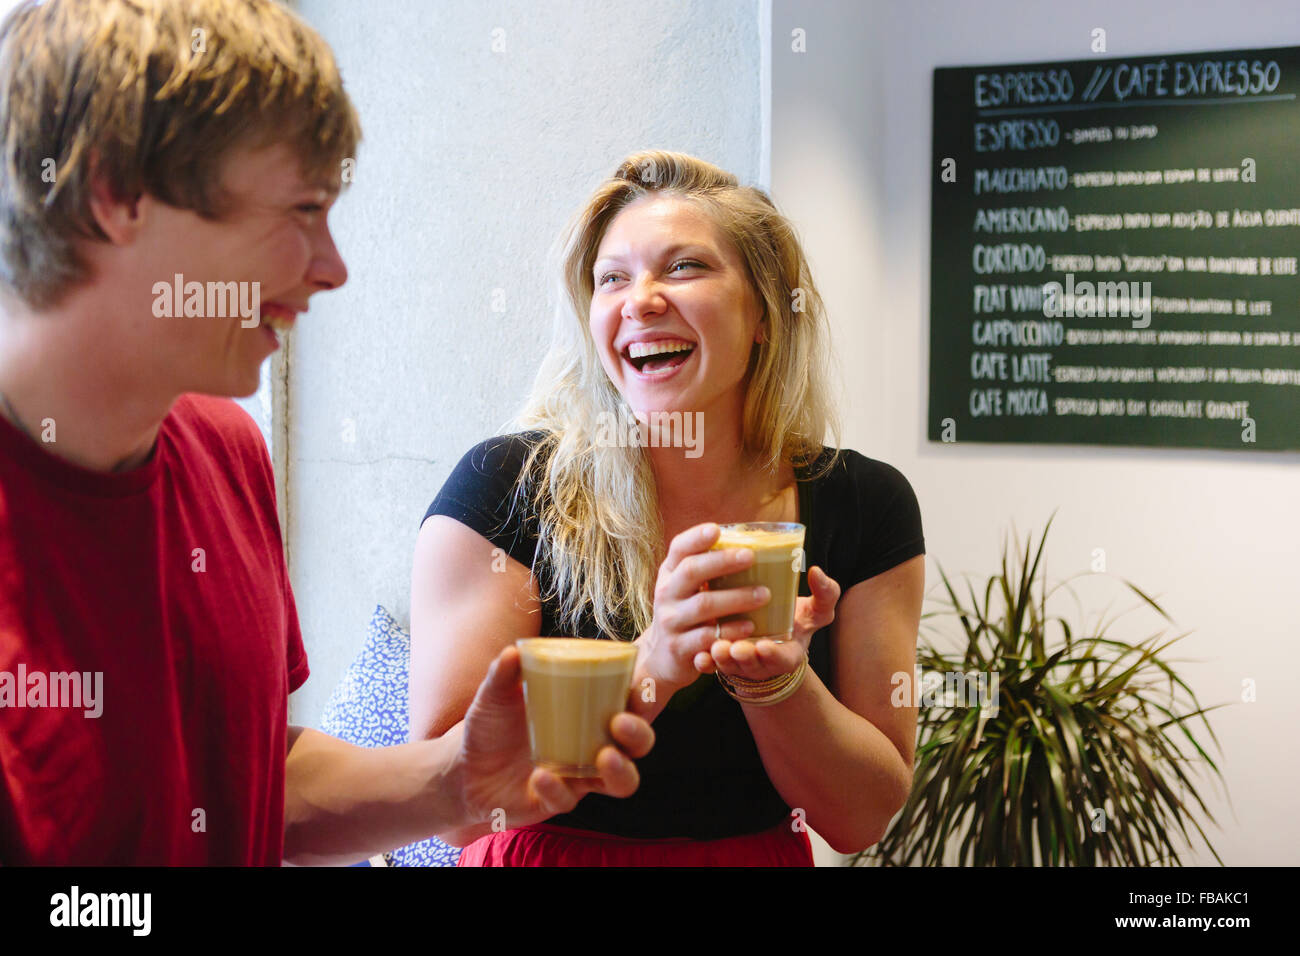 Portugal, Lisbon, Two young people laughing - Stock Image